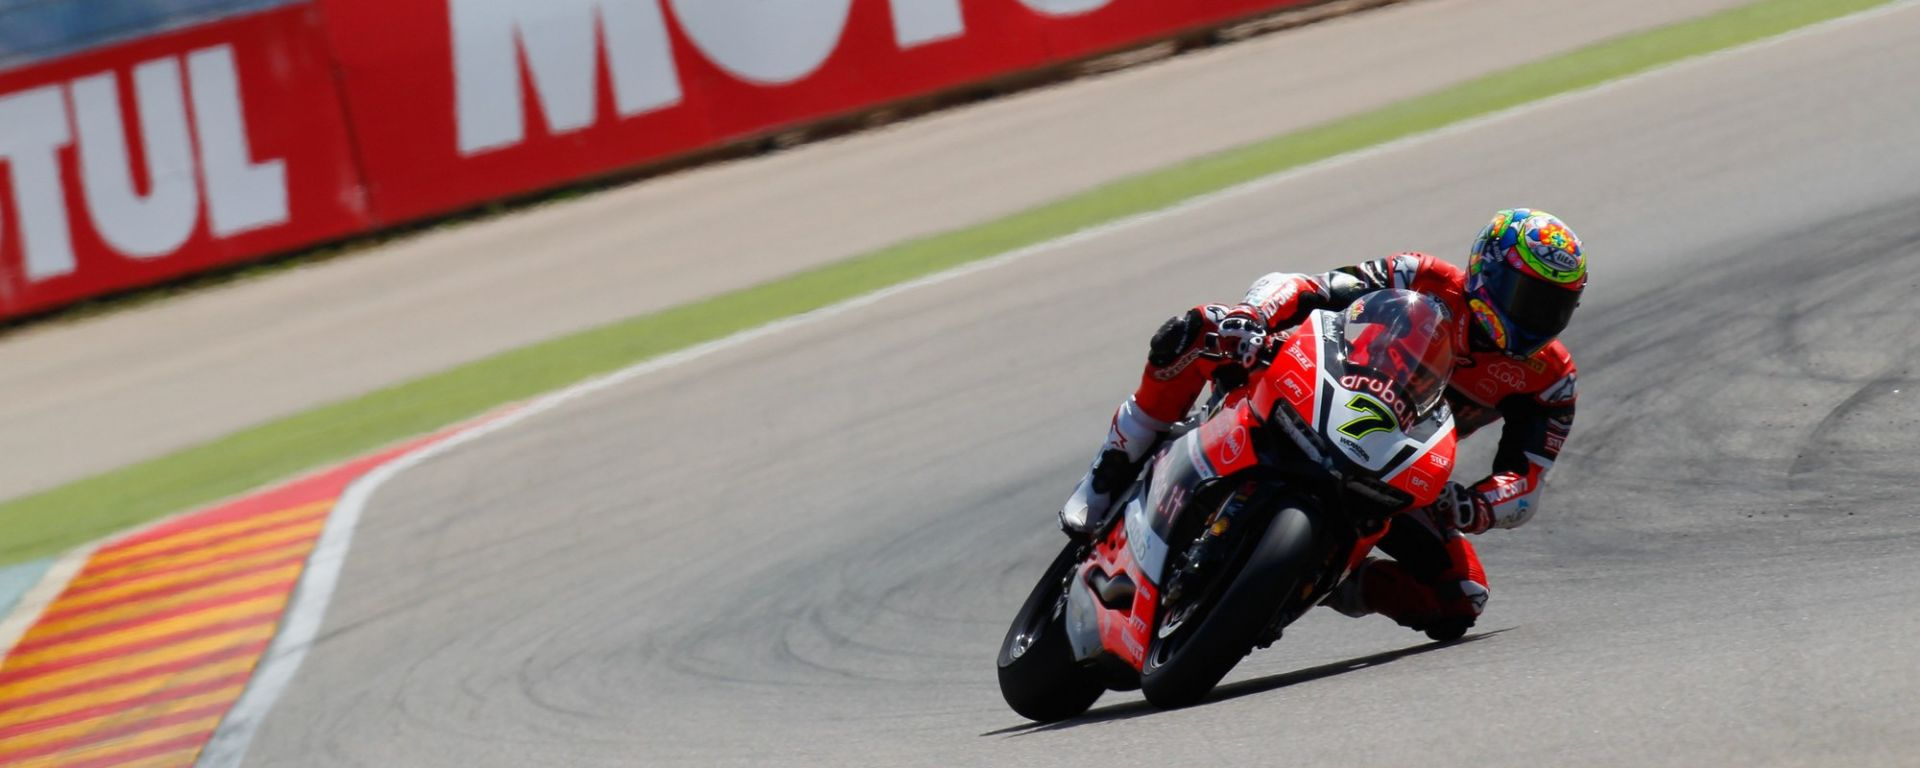 Gp Aragon: Tom Sykes in pole, ma Chaz Davies domina in gara 1